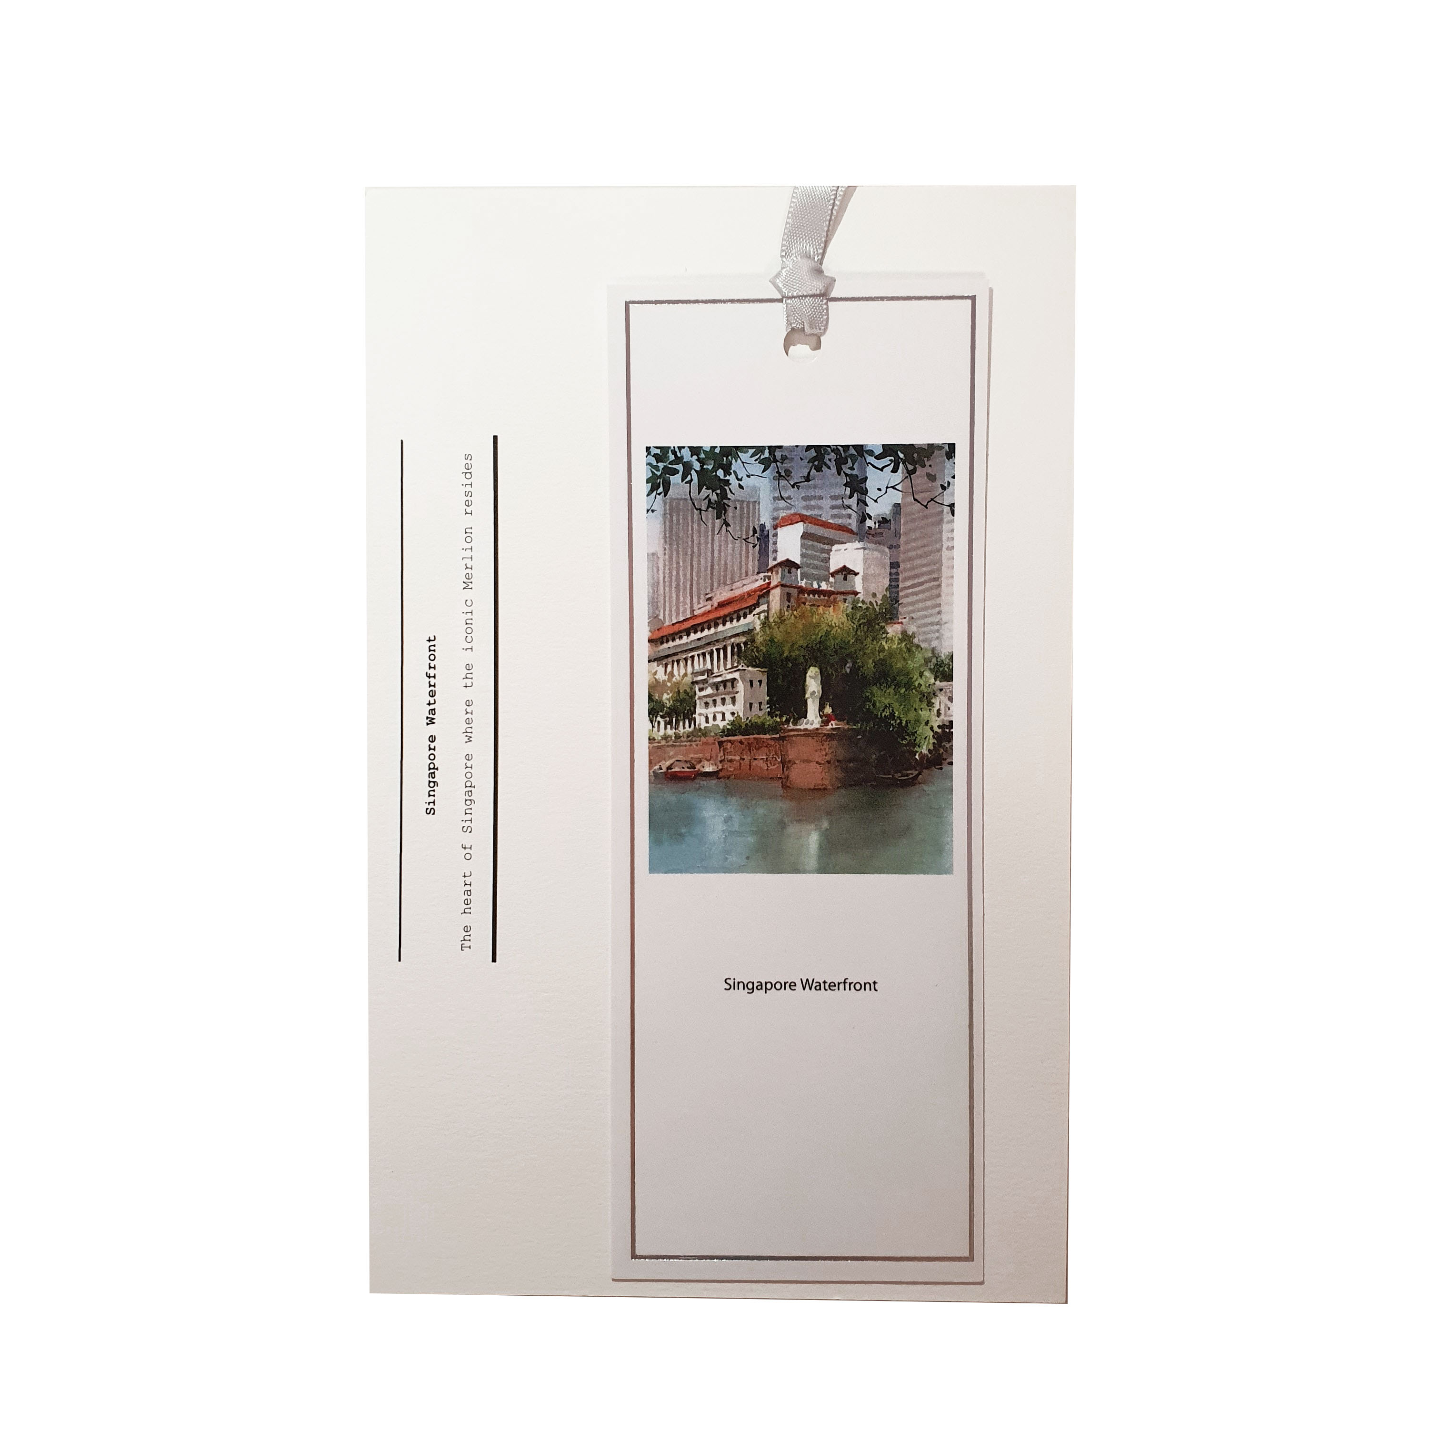 Heritage Water Colour Bookmark Singapore Waterfront by Loy Chye Chuan